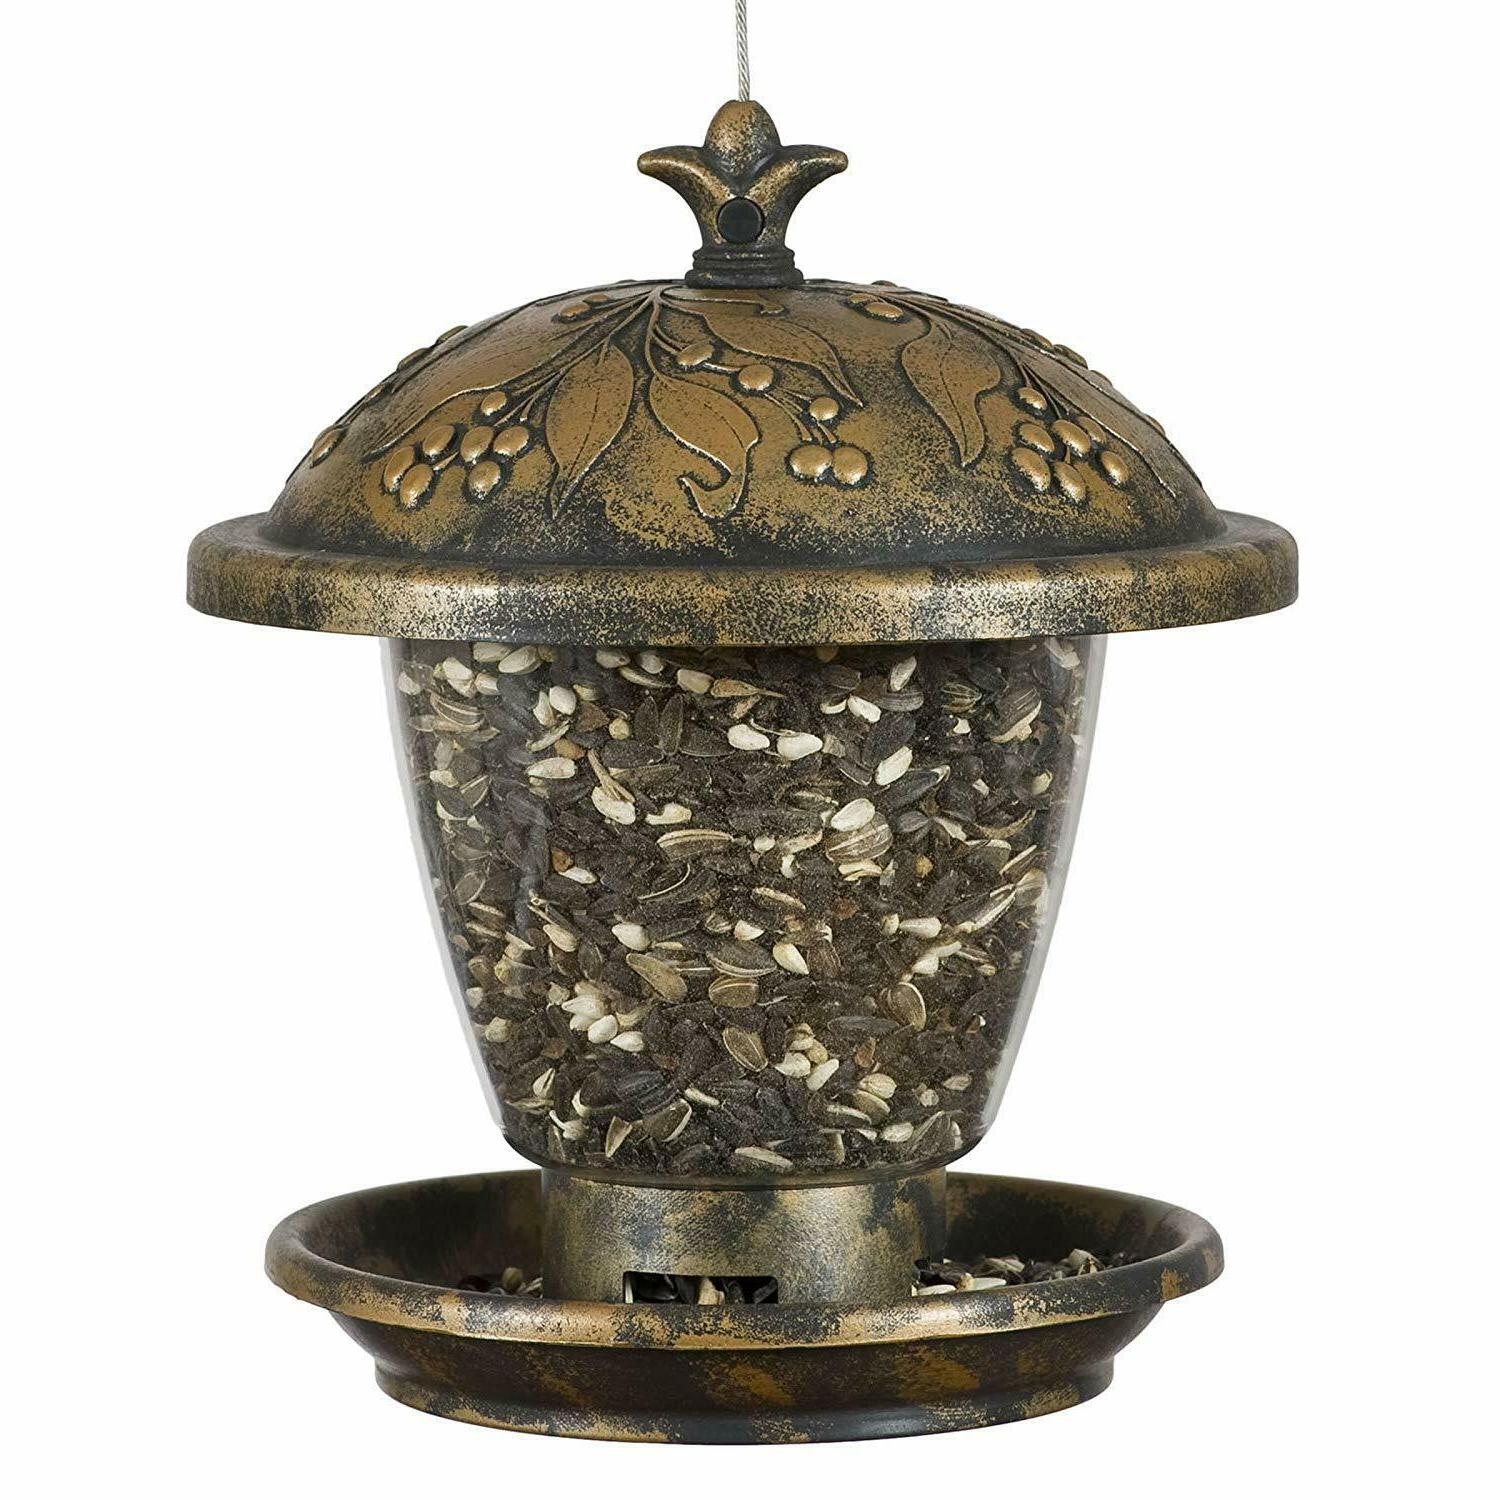 Perky-Pet Holly Berry Gilded Chalet Wild Bird Feeder Made of